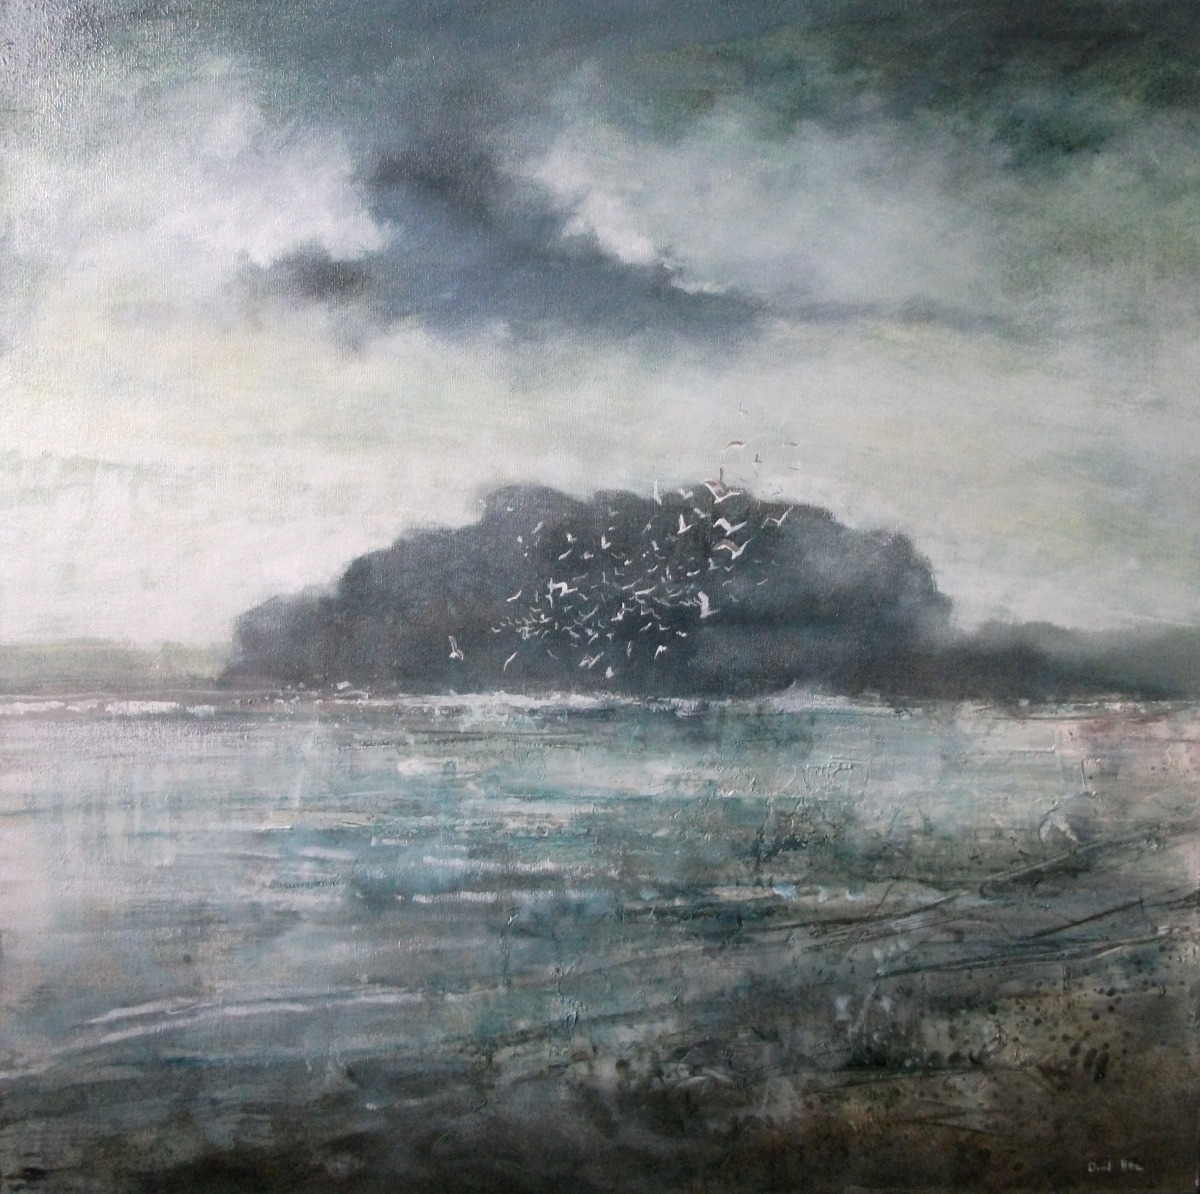 Seabirds by David Bez